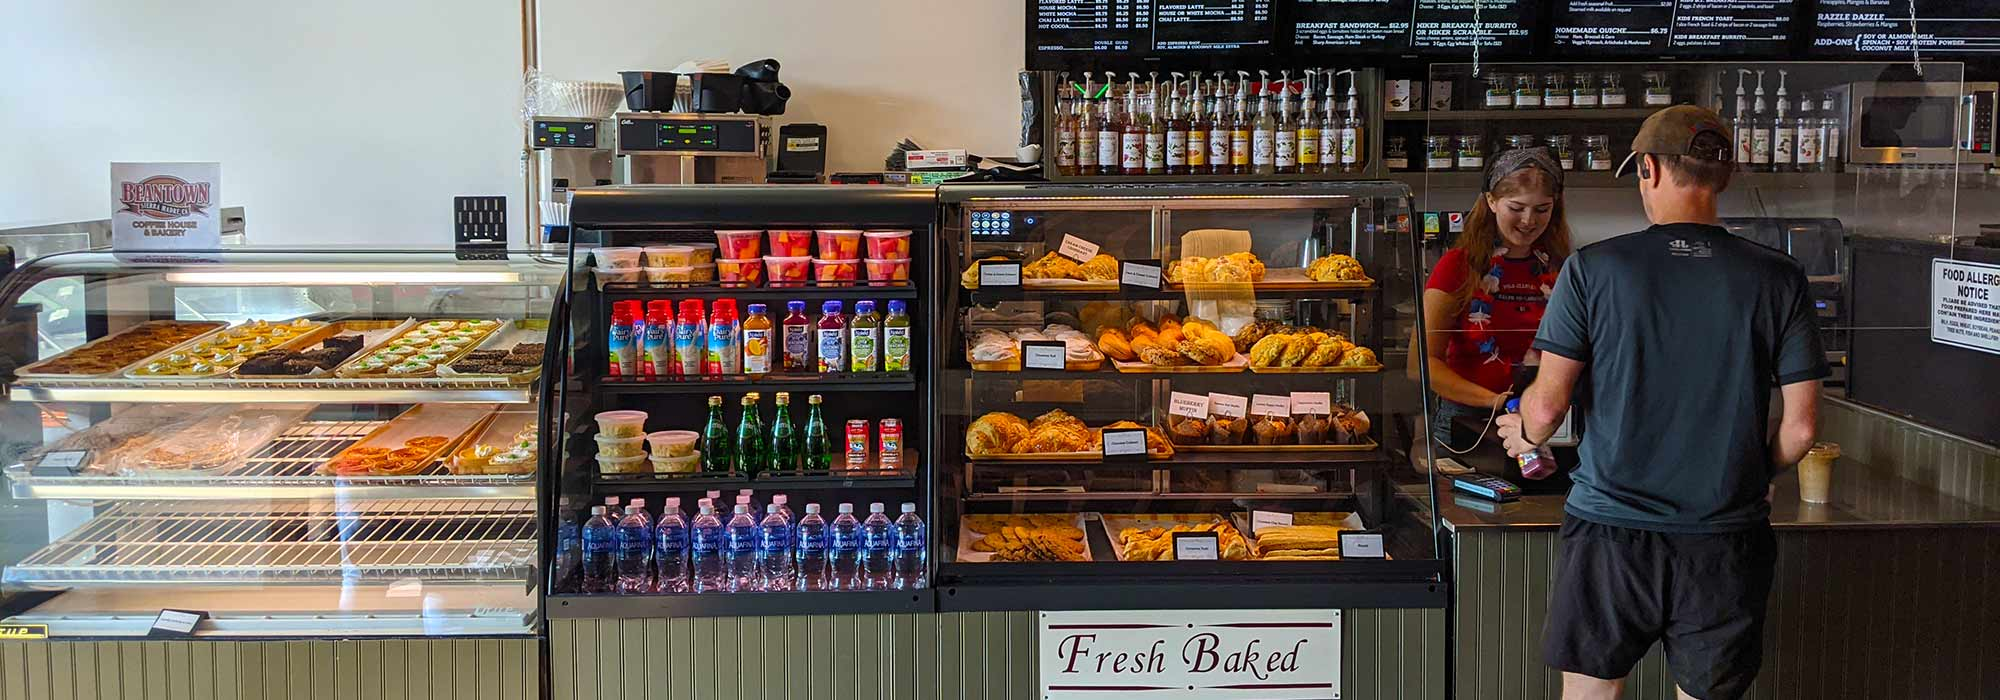 Photo of pastry cases, grab and go items, and a barista serving a customer at the front counter.